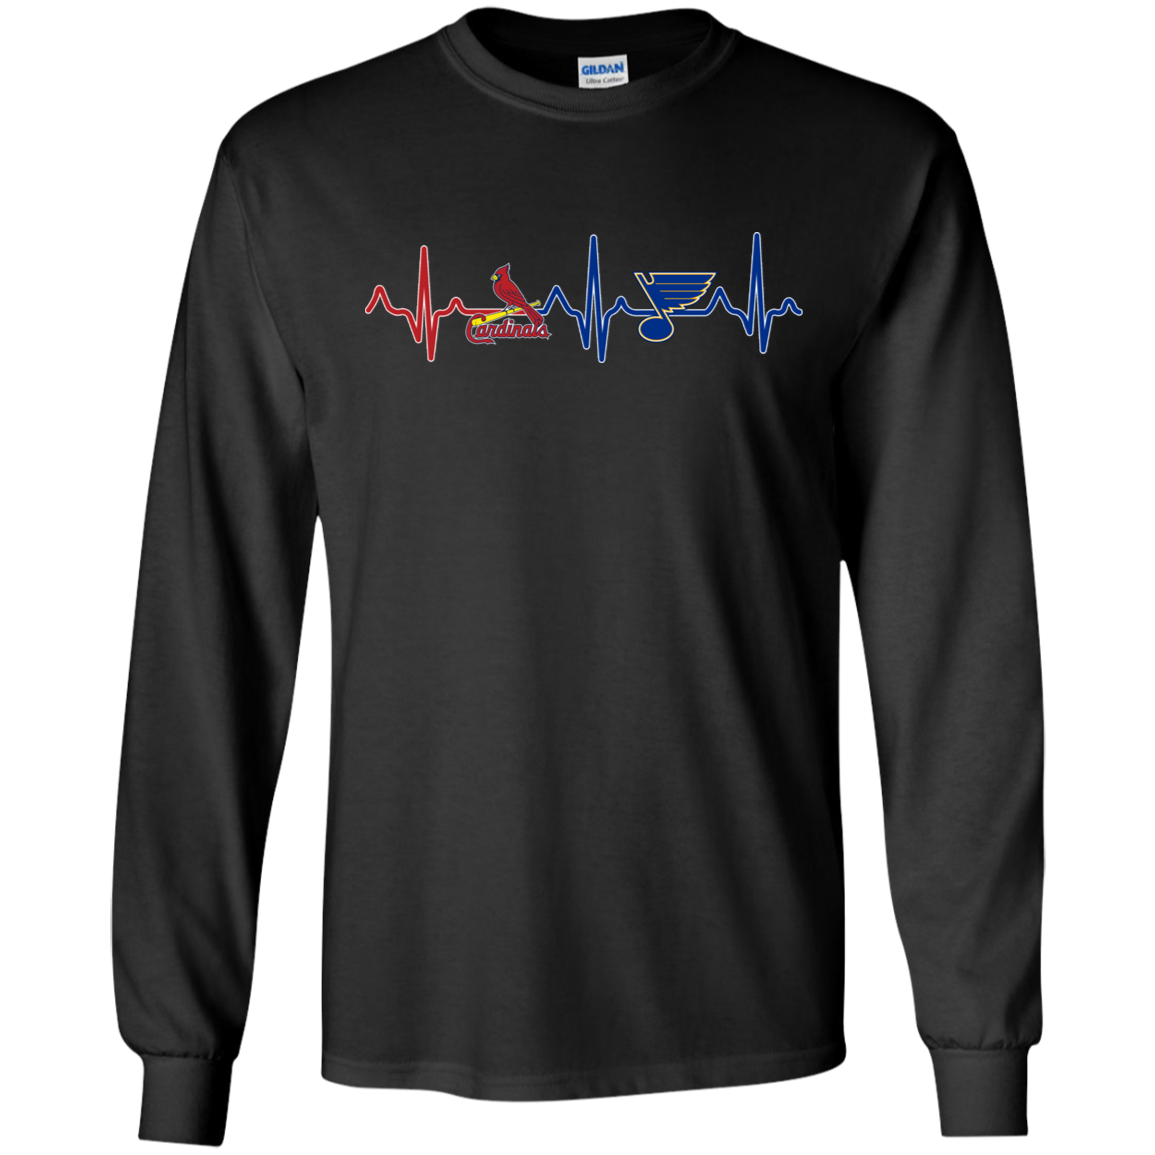 Copy image url St Louis Cardinals St Louis Blues heartbeat shirt